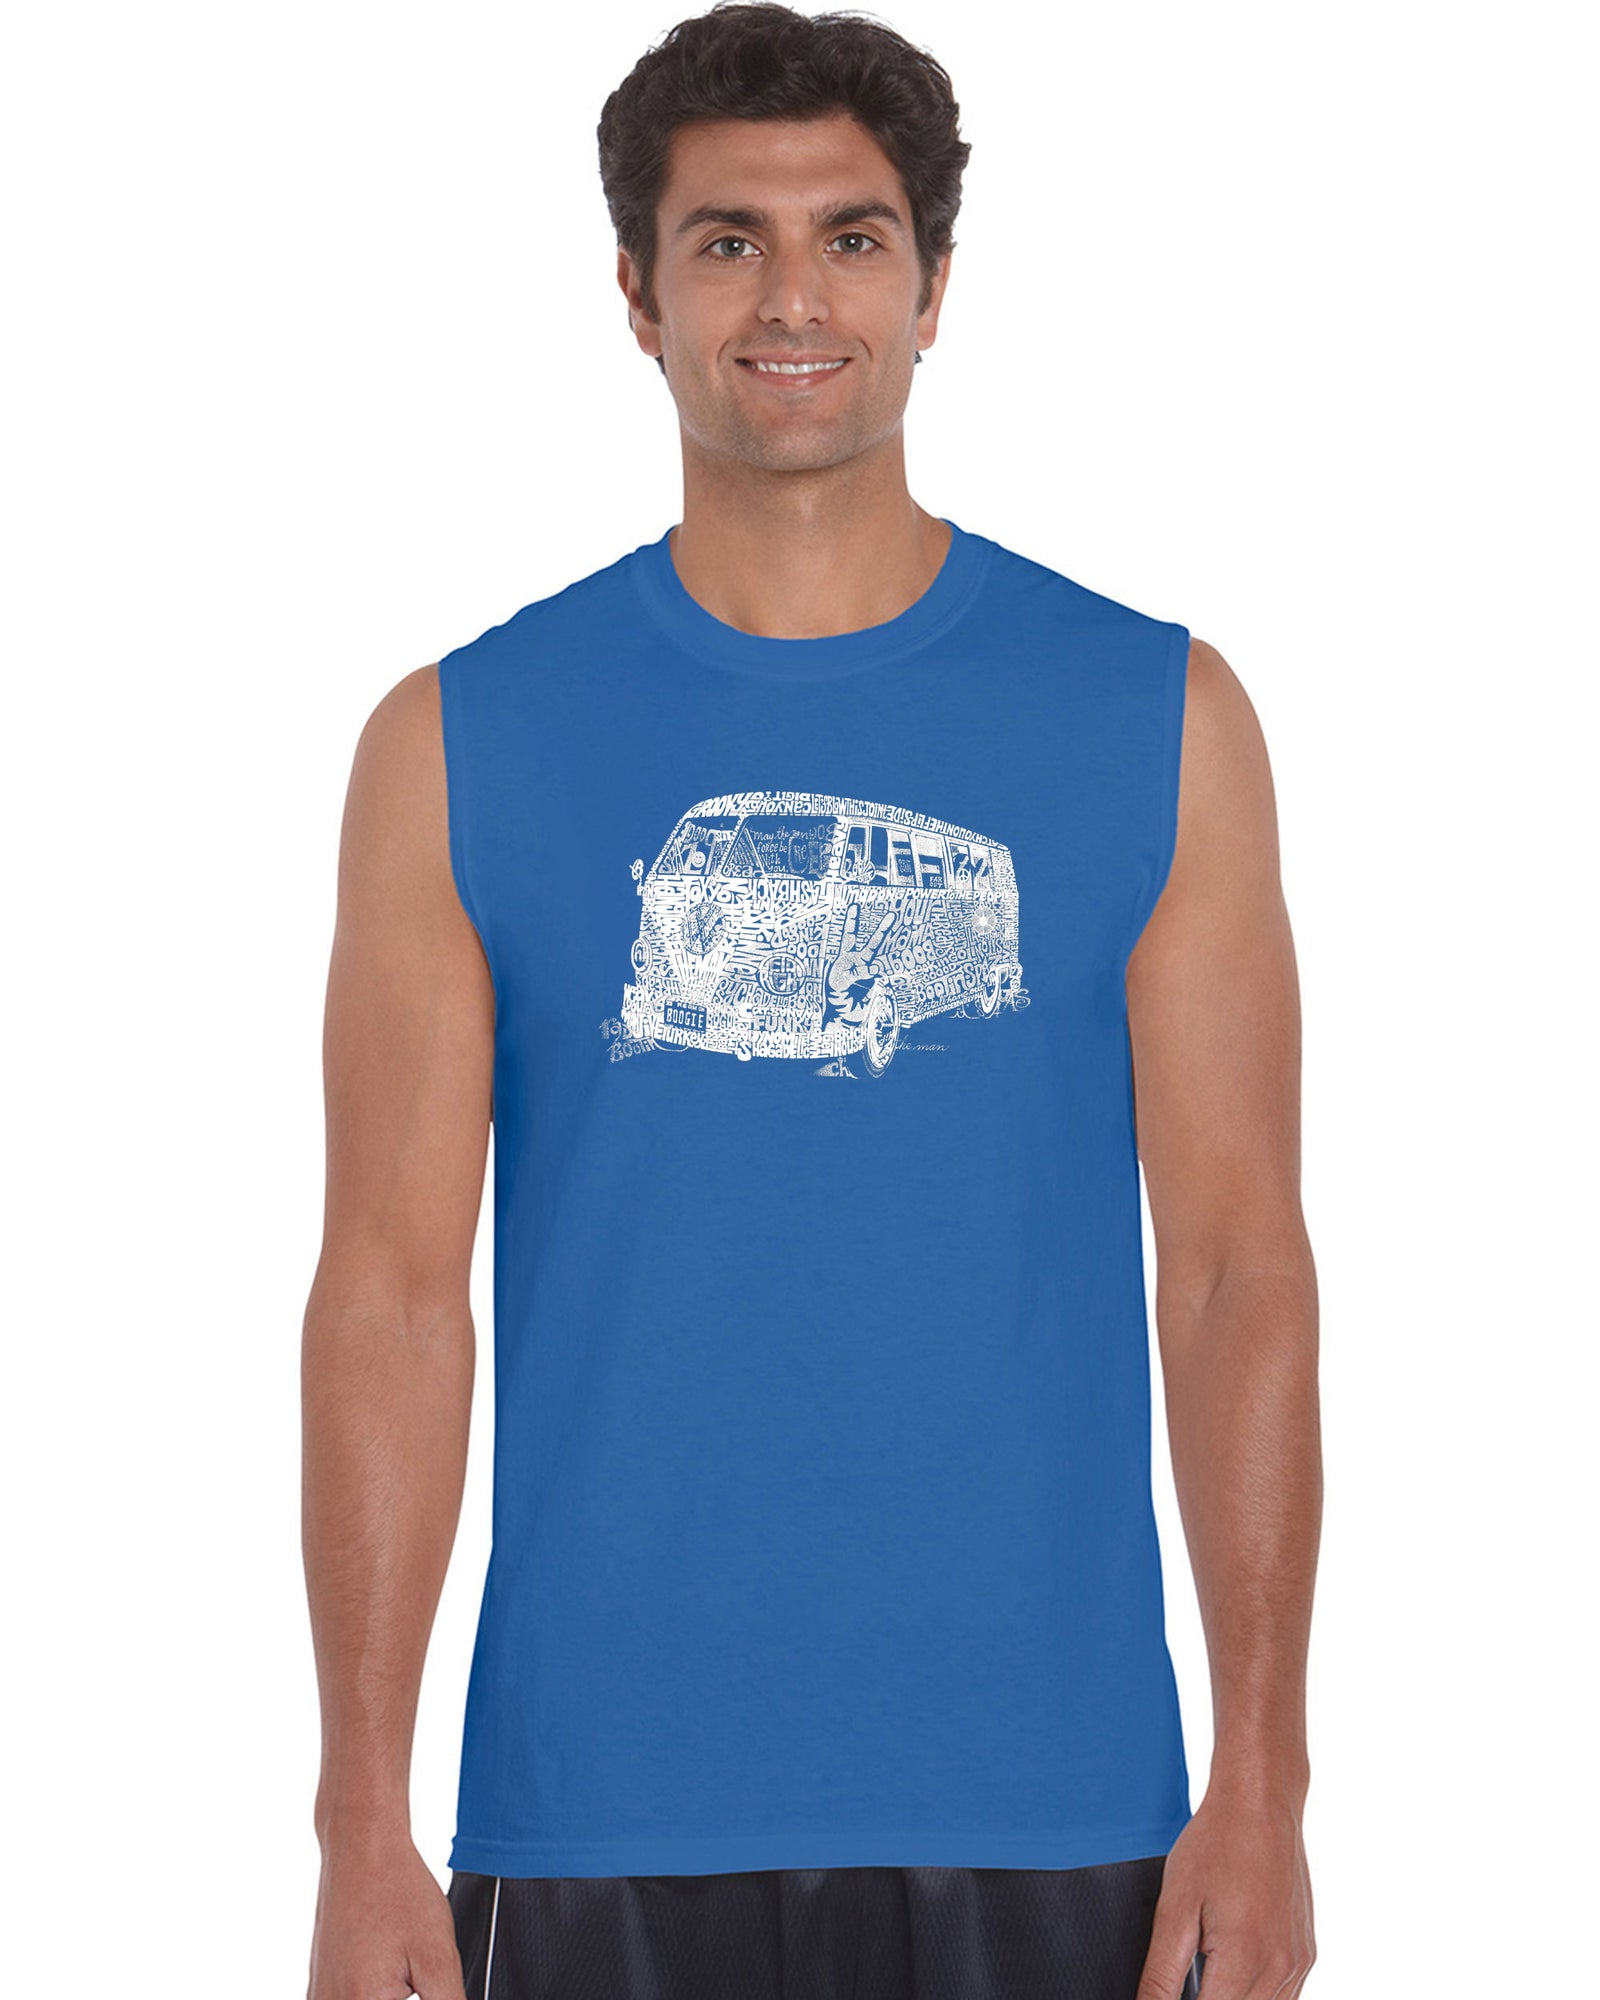 Men's Sleeveless T-shirt - THE 70'S